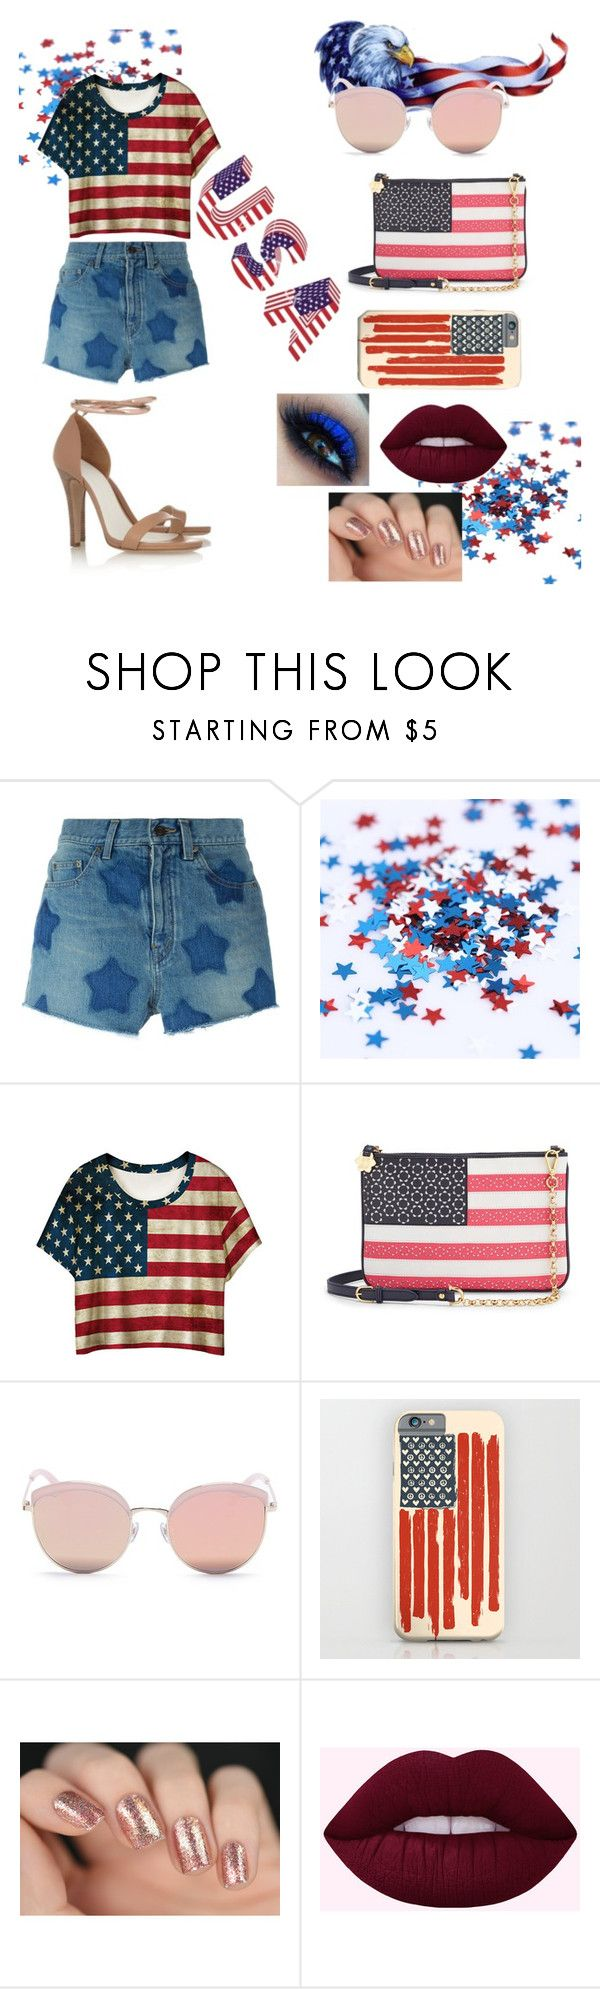 """Happy Independence Day !!! USA"" by cristhina-a-dieguez-c on Polyvore featuring moda, Yves Saint Laurent, WithChic, Draper James, Stephane + Christian y Gucci"